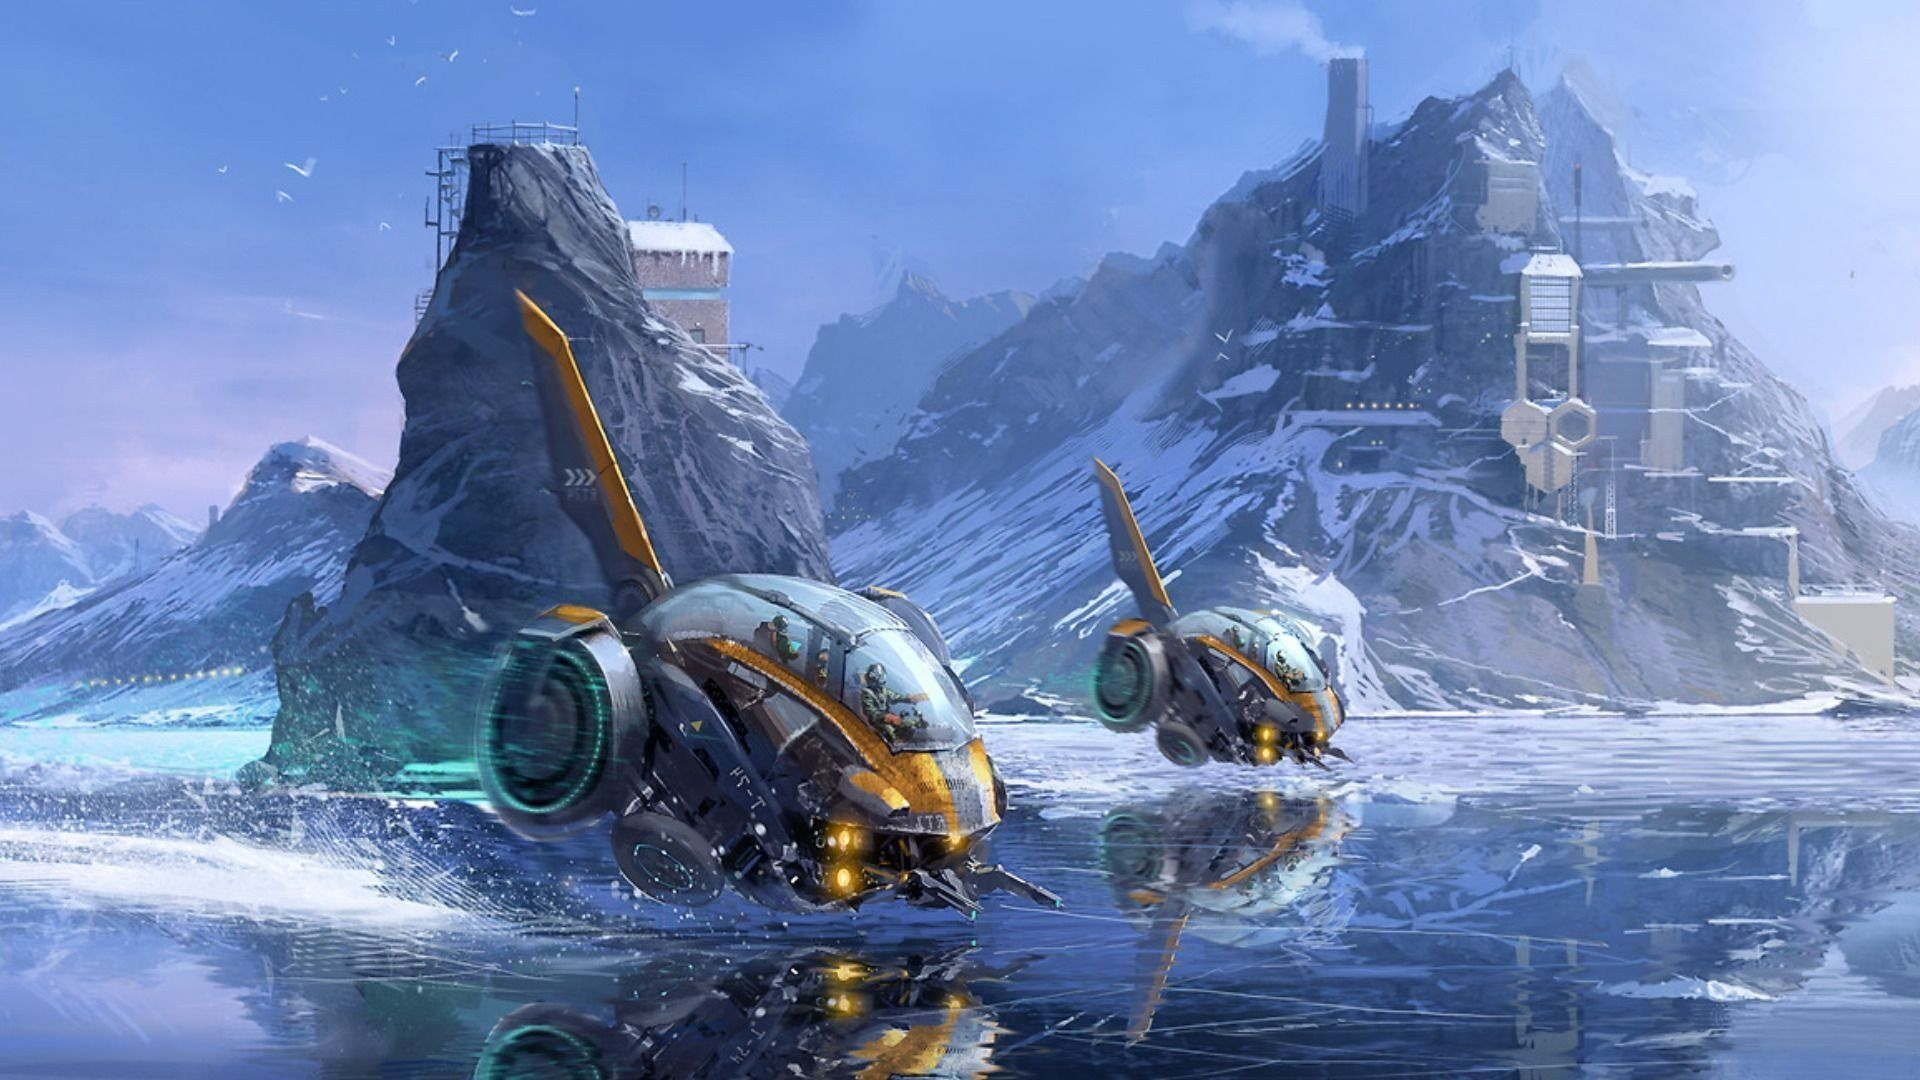 Pin By Micai Nethercott On Sci-Fi Gadgets And Ships